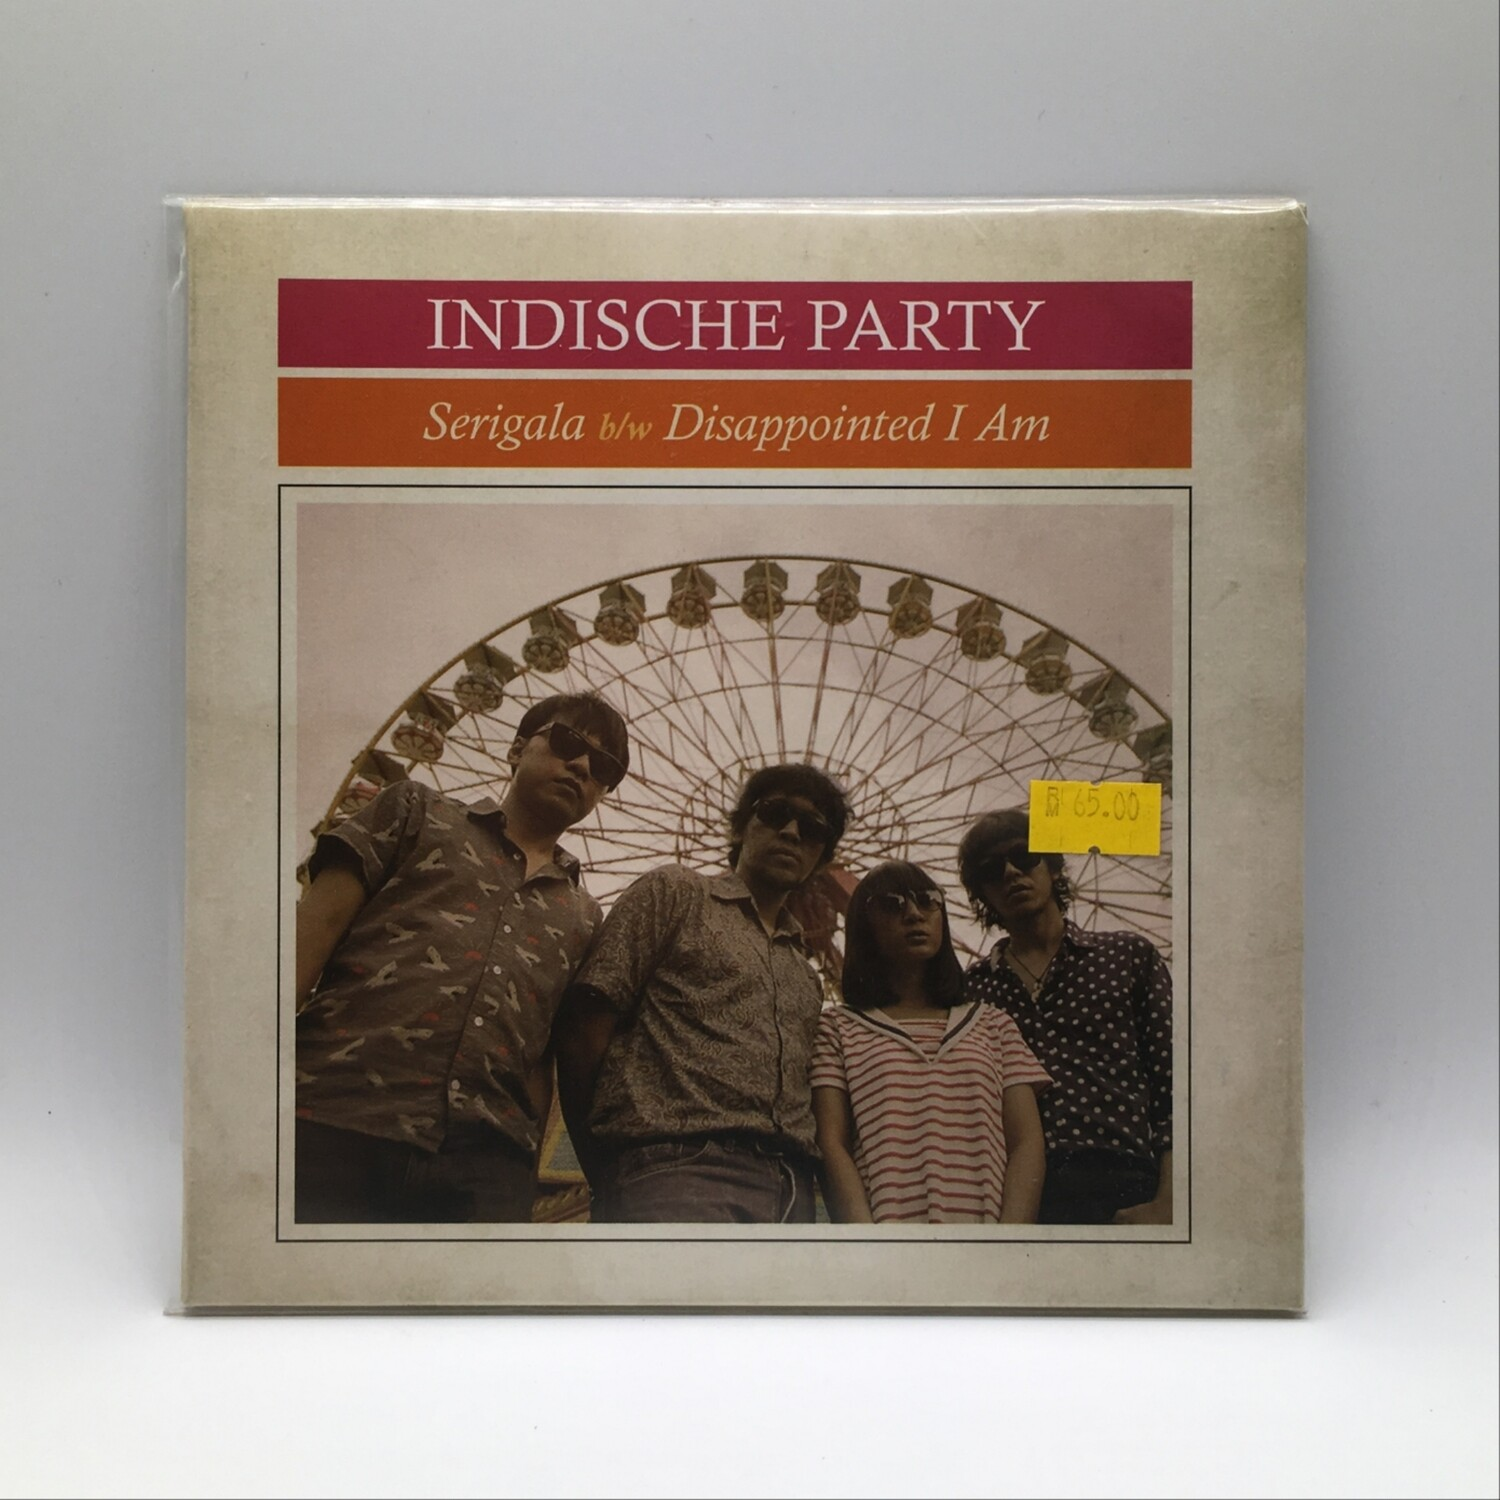 INDISCHE PARTY -SERIGALA C/W DISAPPOINTEDI AM